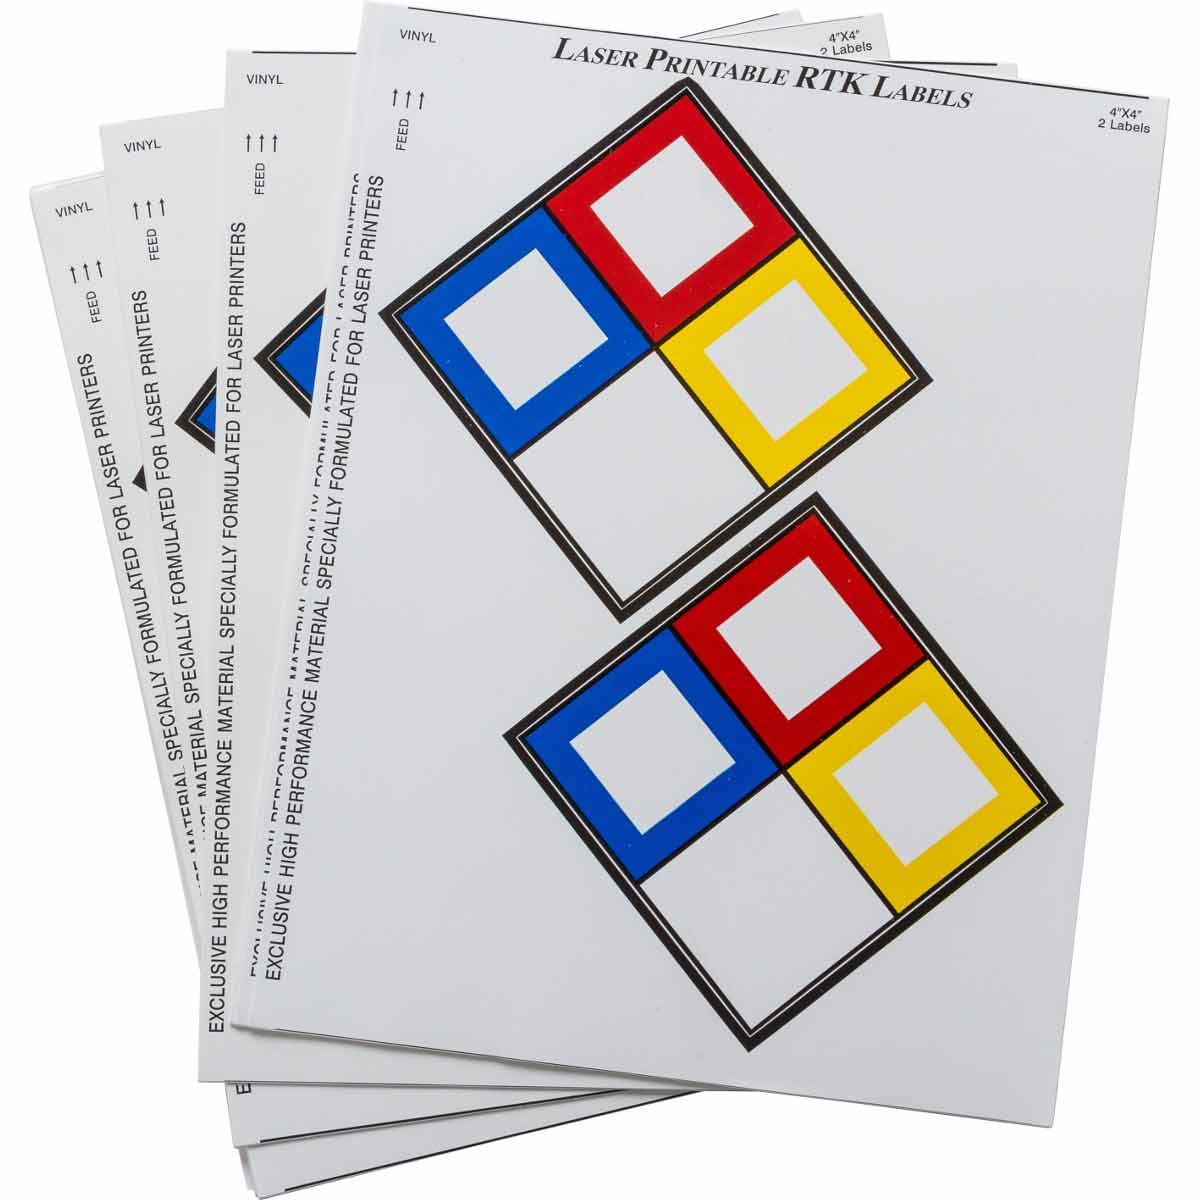 Laser Printable Vinyl Right-to-Know Label Blanks